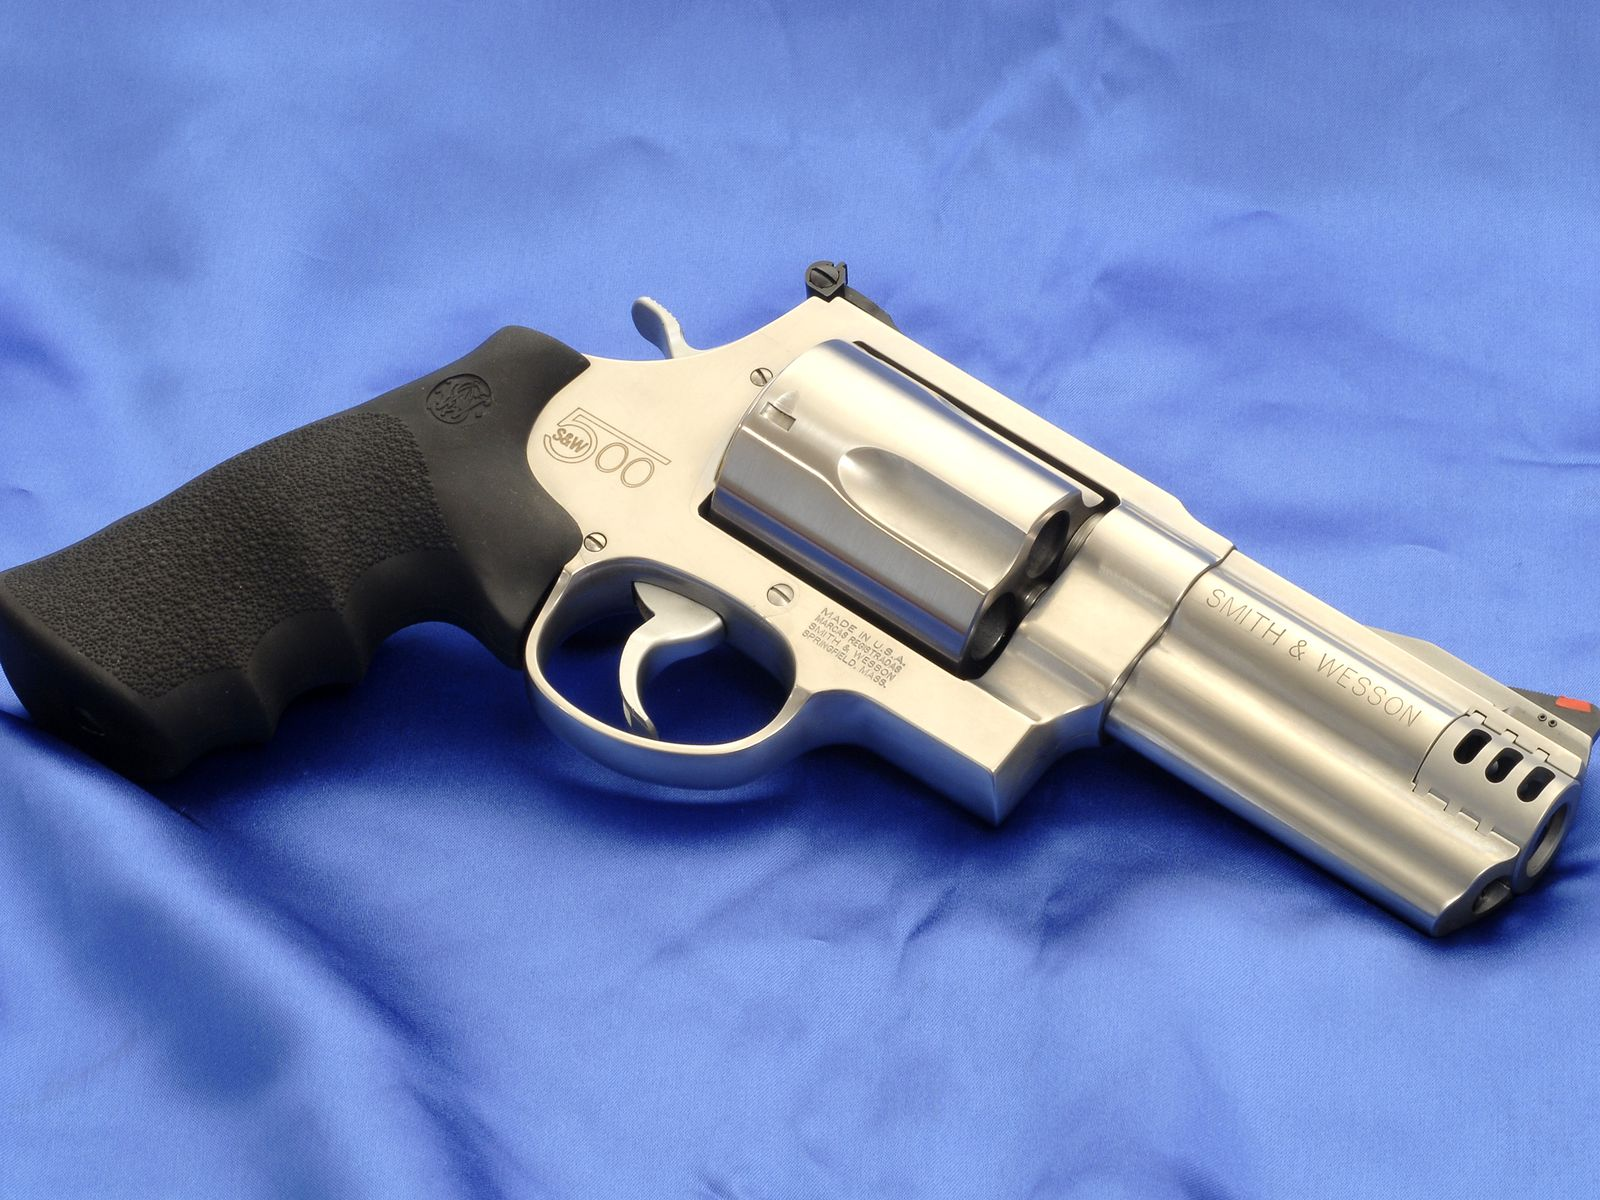 Smith Wesson Revolver Computer Wallpapers Desktop Backgrounds 1600x1200